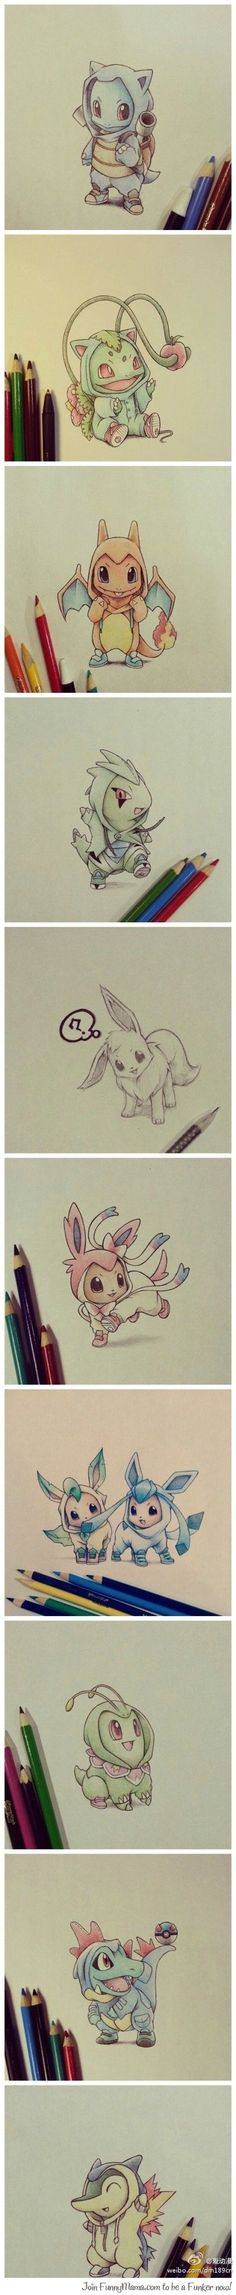 Pokemen Drawing: Cuteness Overloaded! Colorpencils!